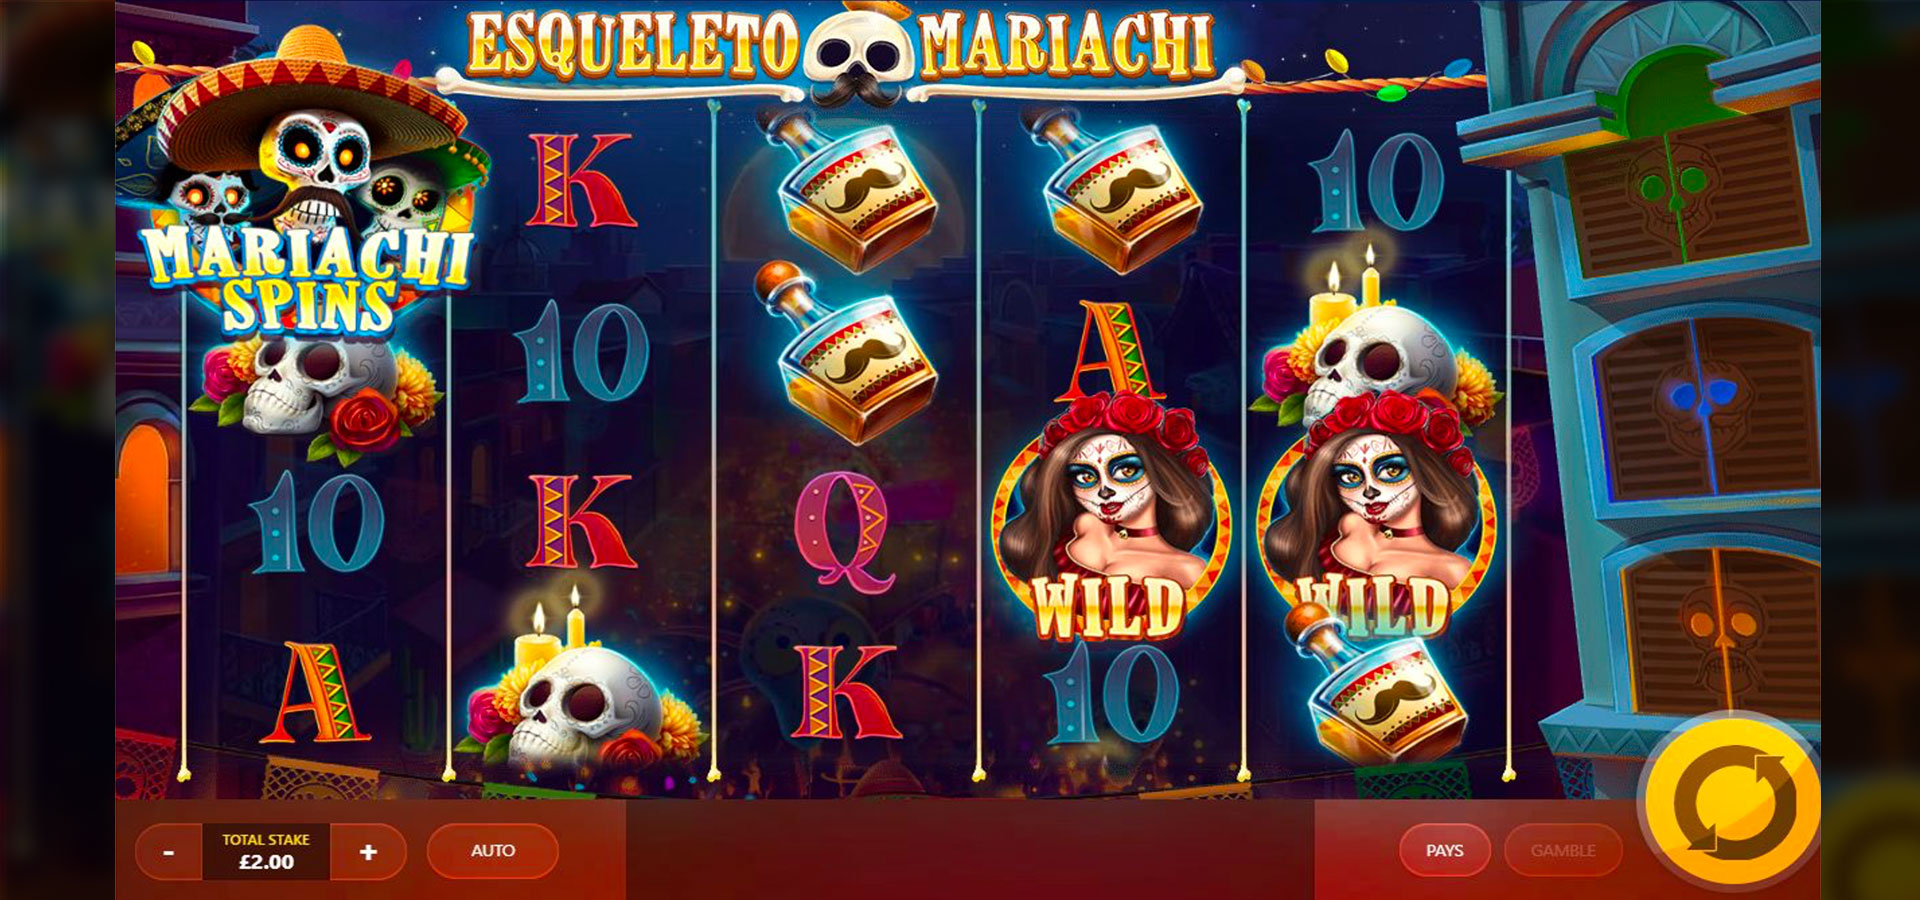 Free slot games on iphone